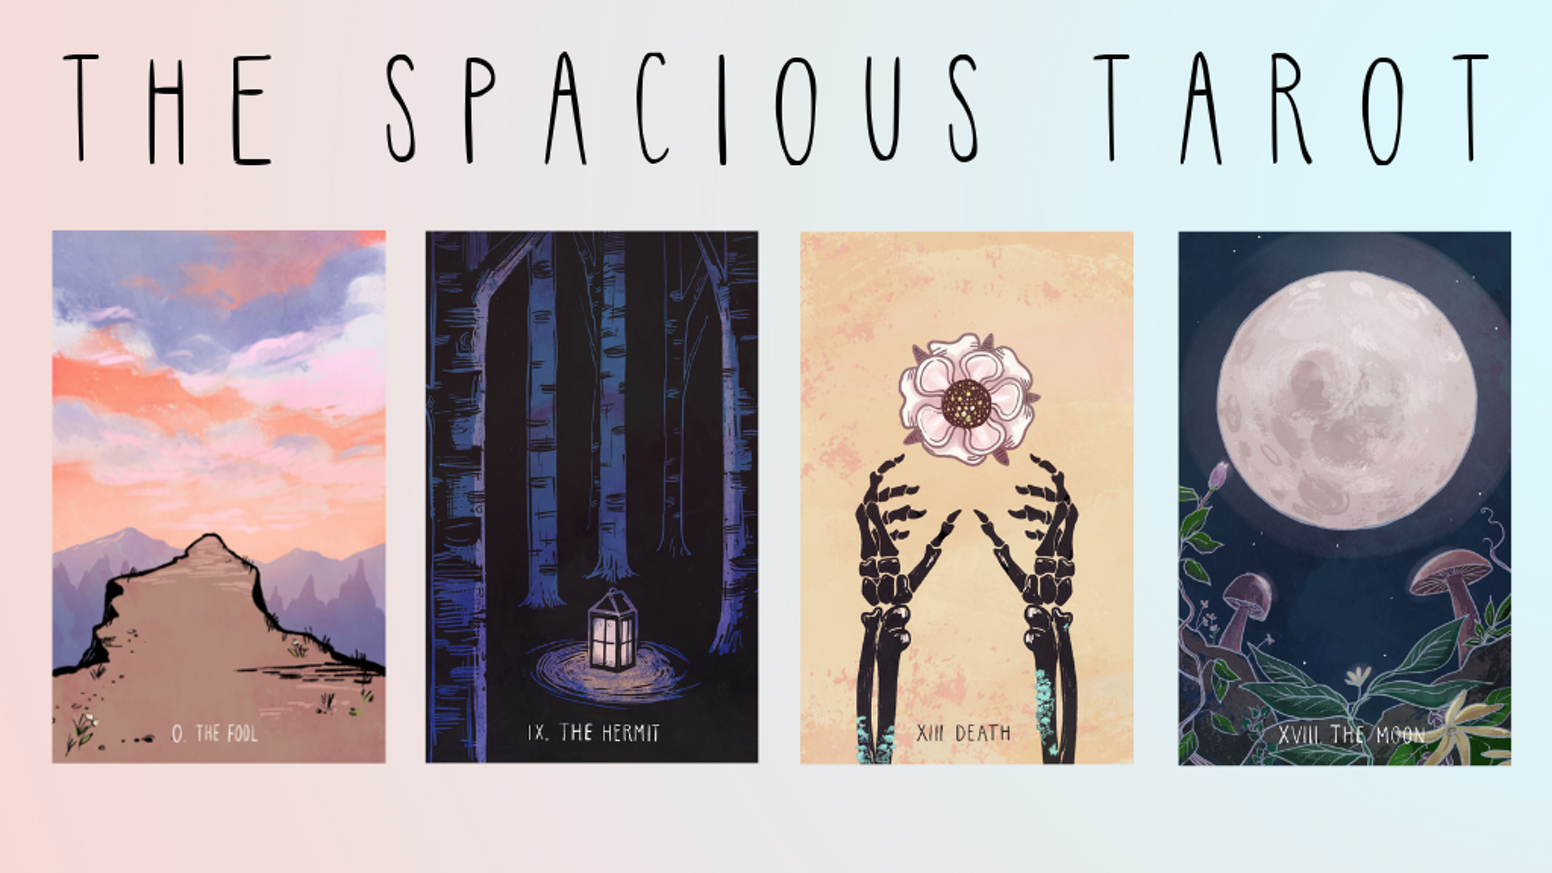 An immersive 78 card tarot deck and guidebook, created by Annie Ruygt and Carrie Mallon.